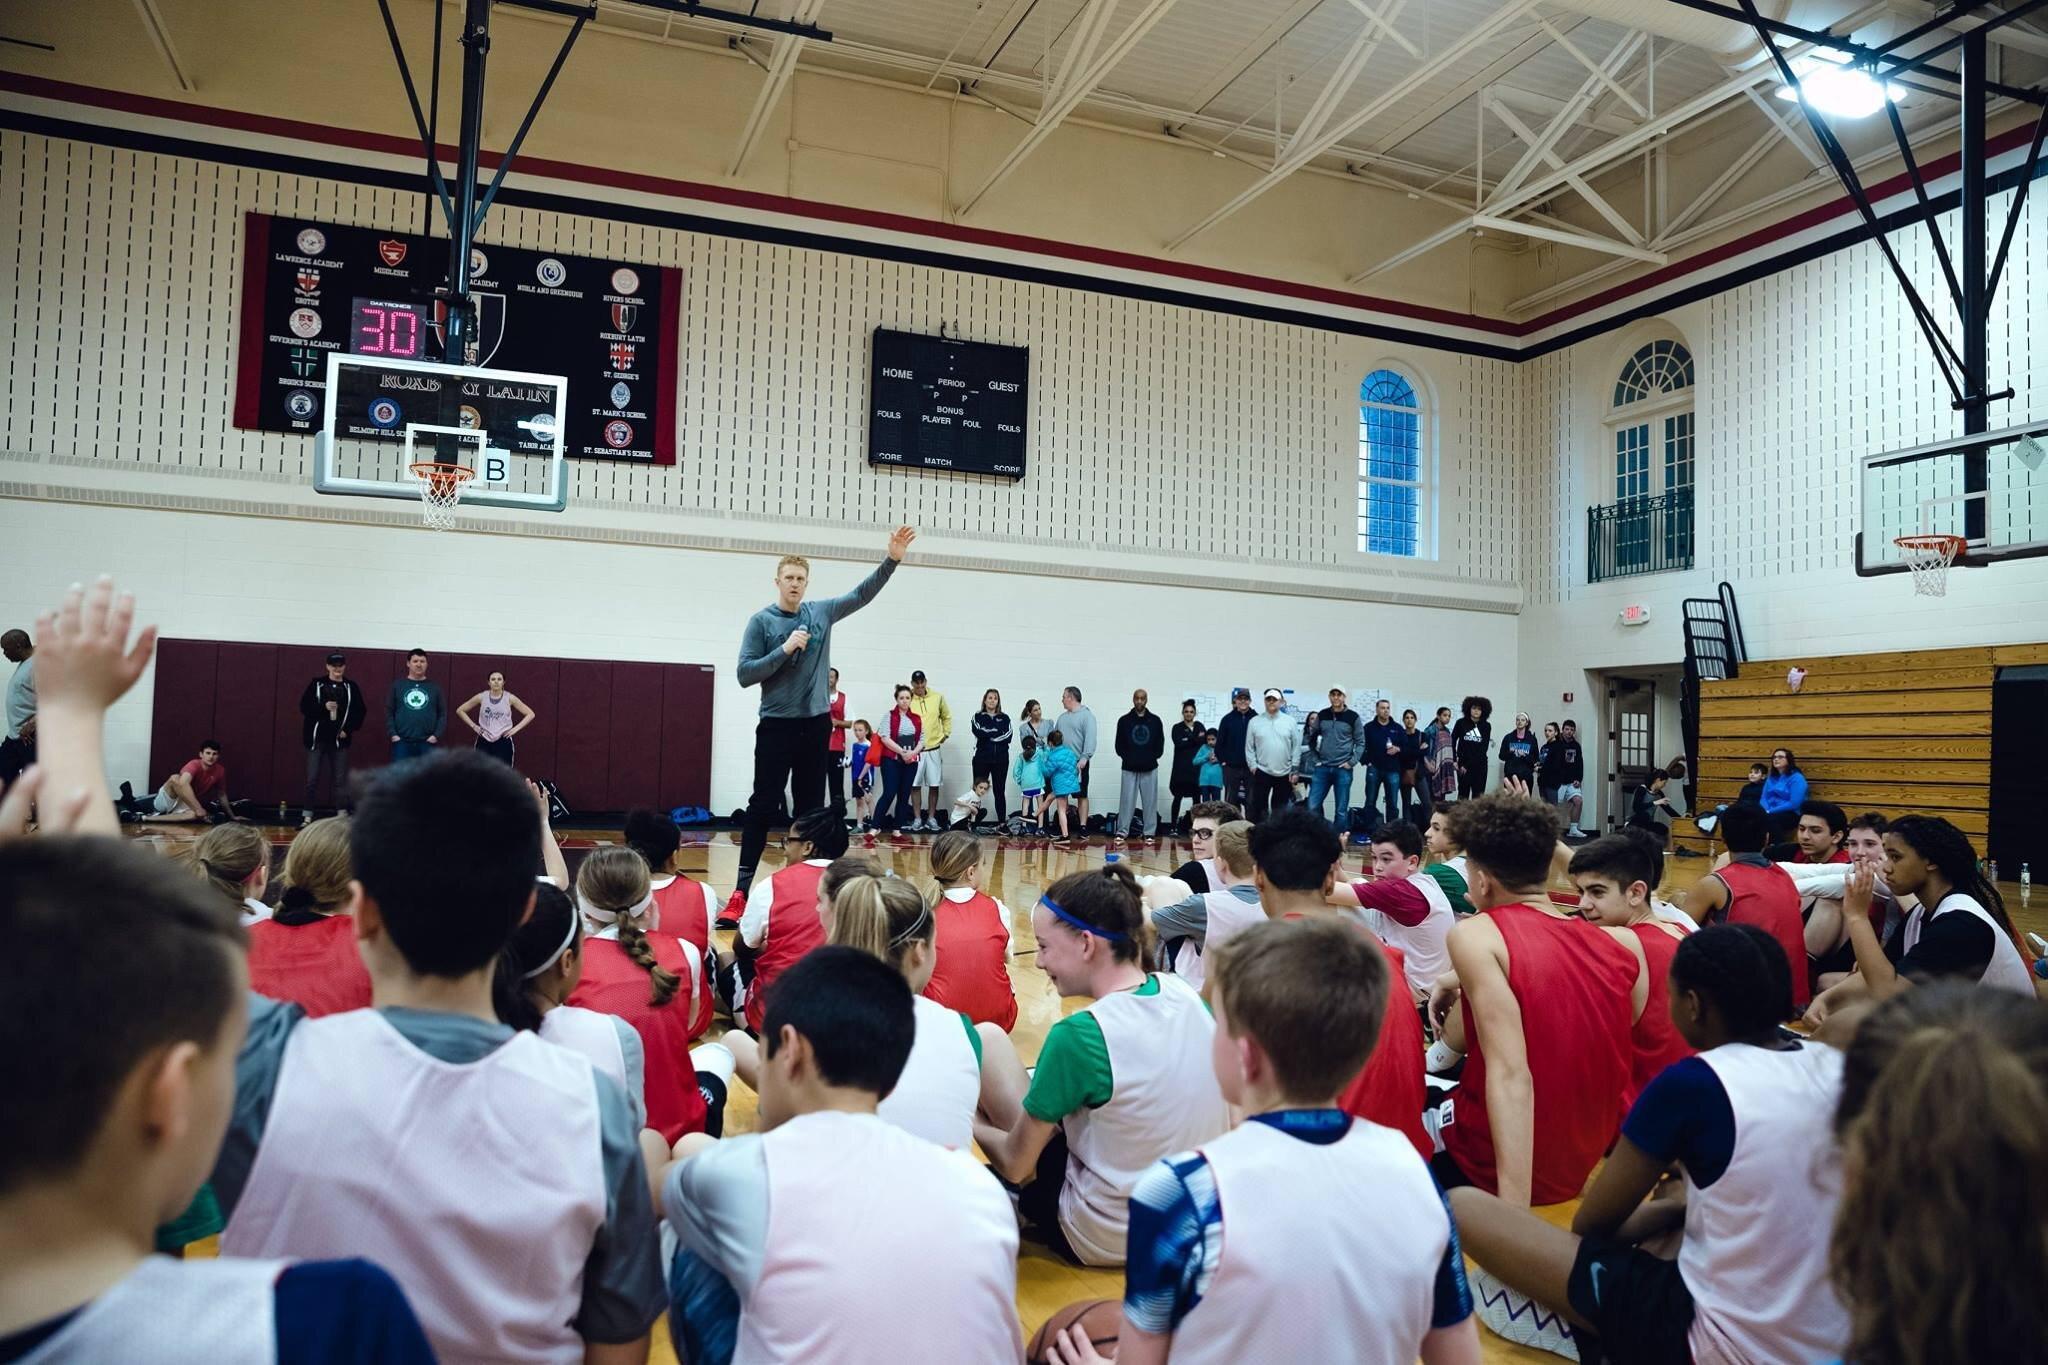 The Scalabrine 3v3 Classic - Brought to you by The White Mamba, Former Celtic and NBC Boston Commentator Brian Scalabrine, this event celebrates the madness of March with a day full 3v3 basketball competition for ALL ages! Prizes, entertainment, food and more! Click here for more information.